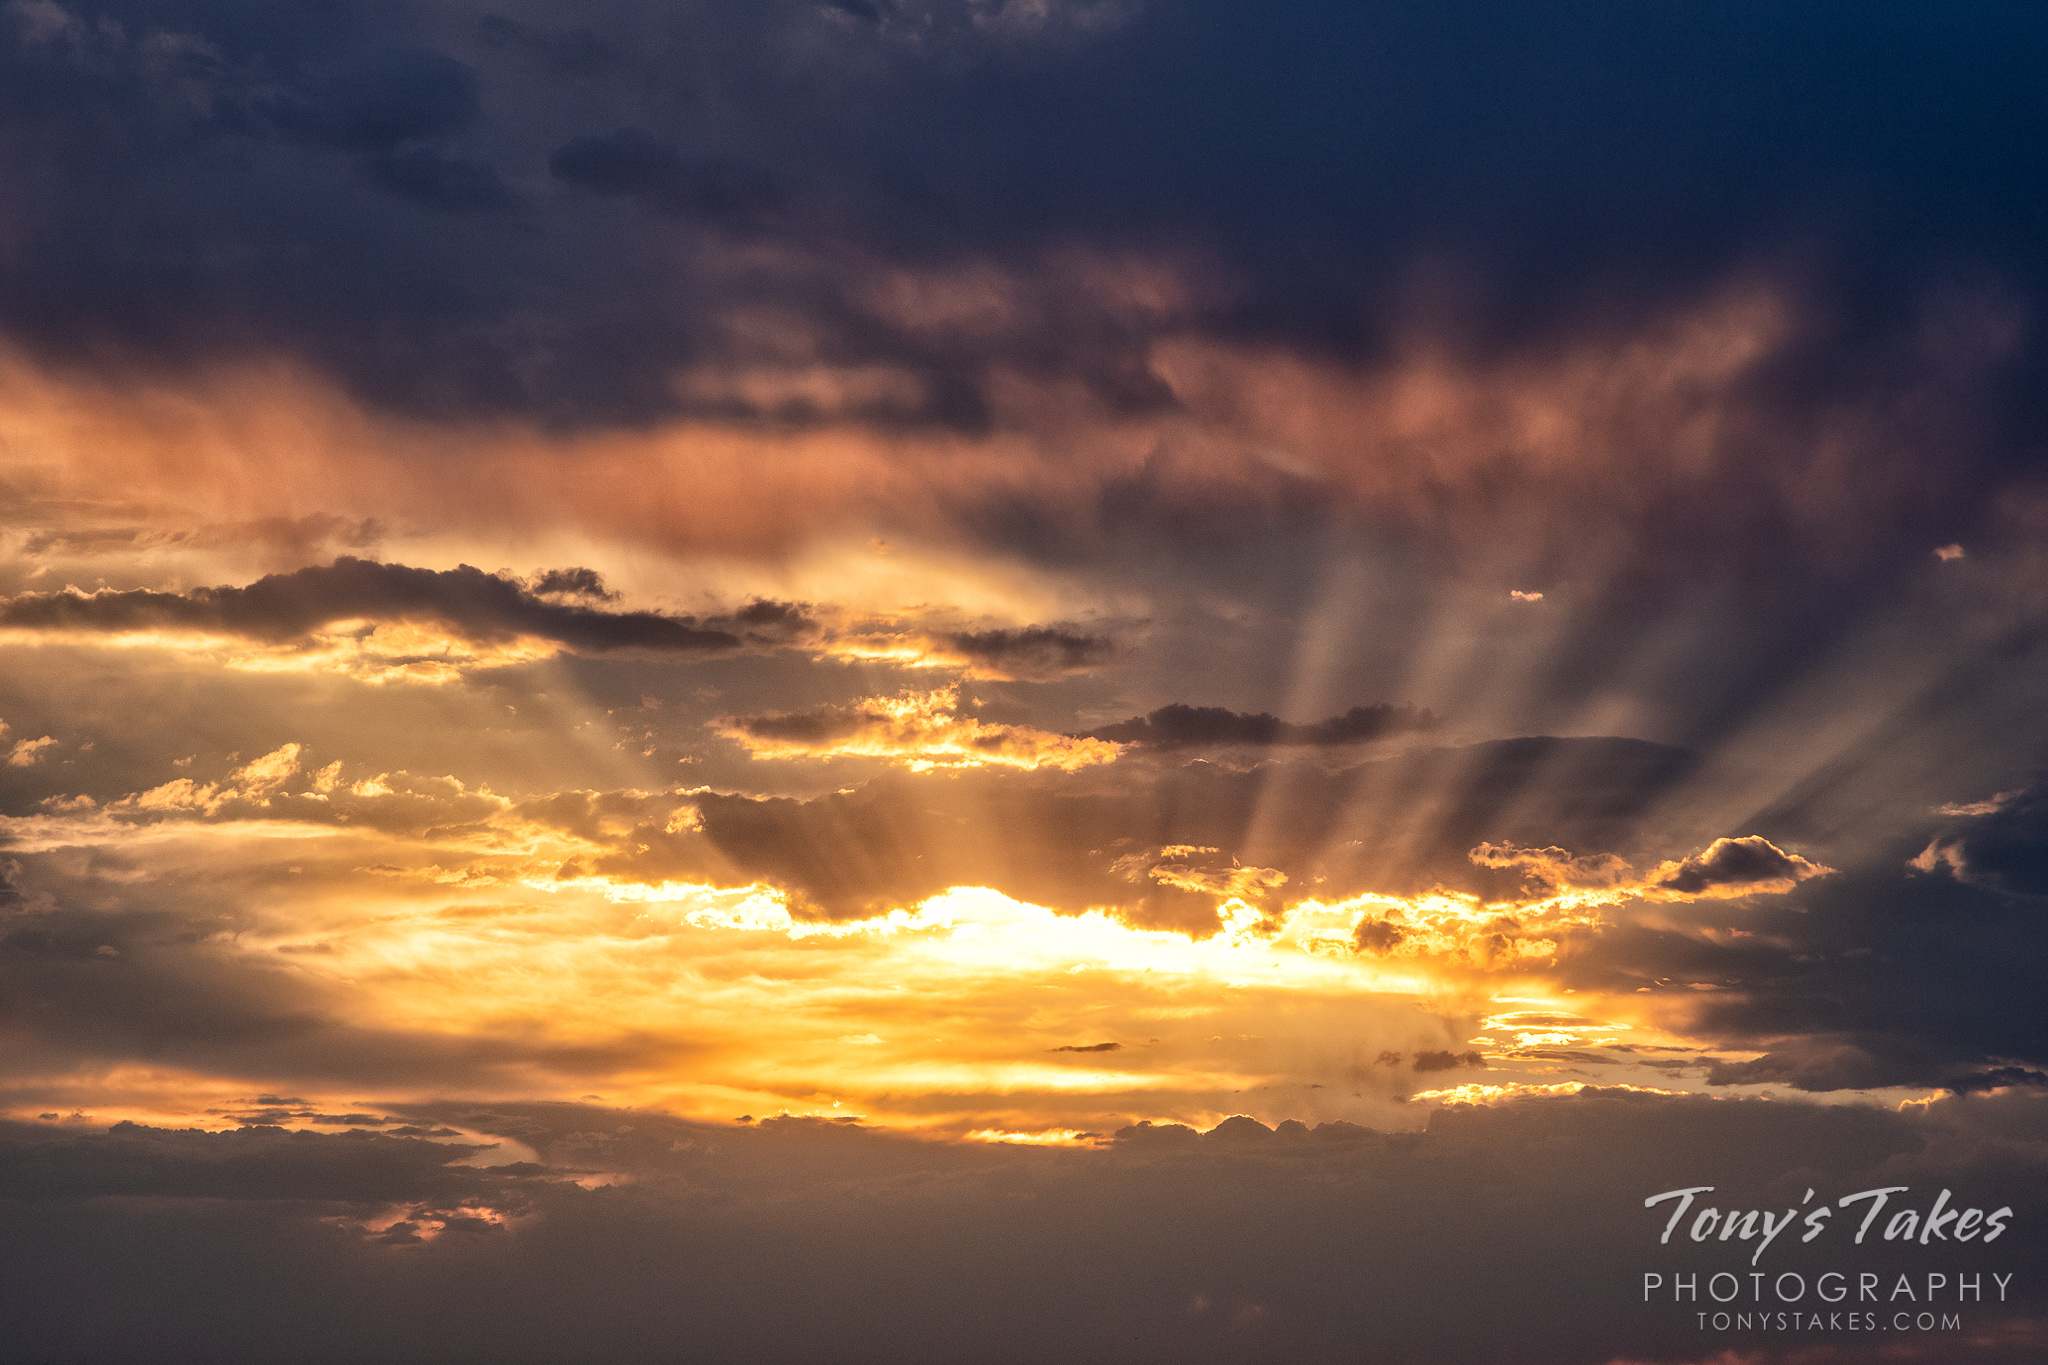 Crepuscular rays emanate from sunset at North Sterling State Park in Colorado. (© Tony's Takes)